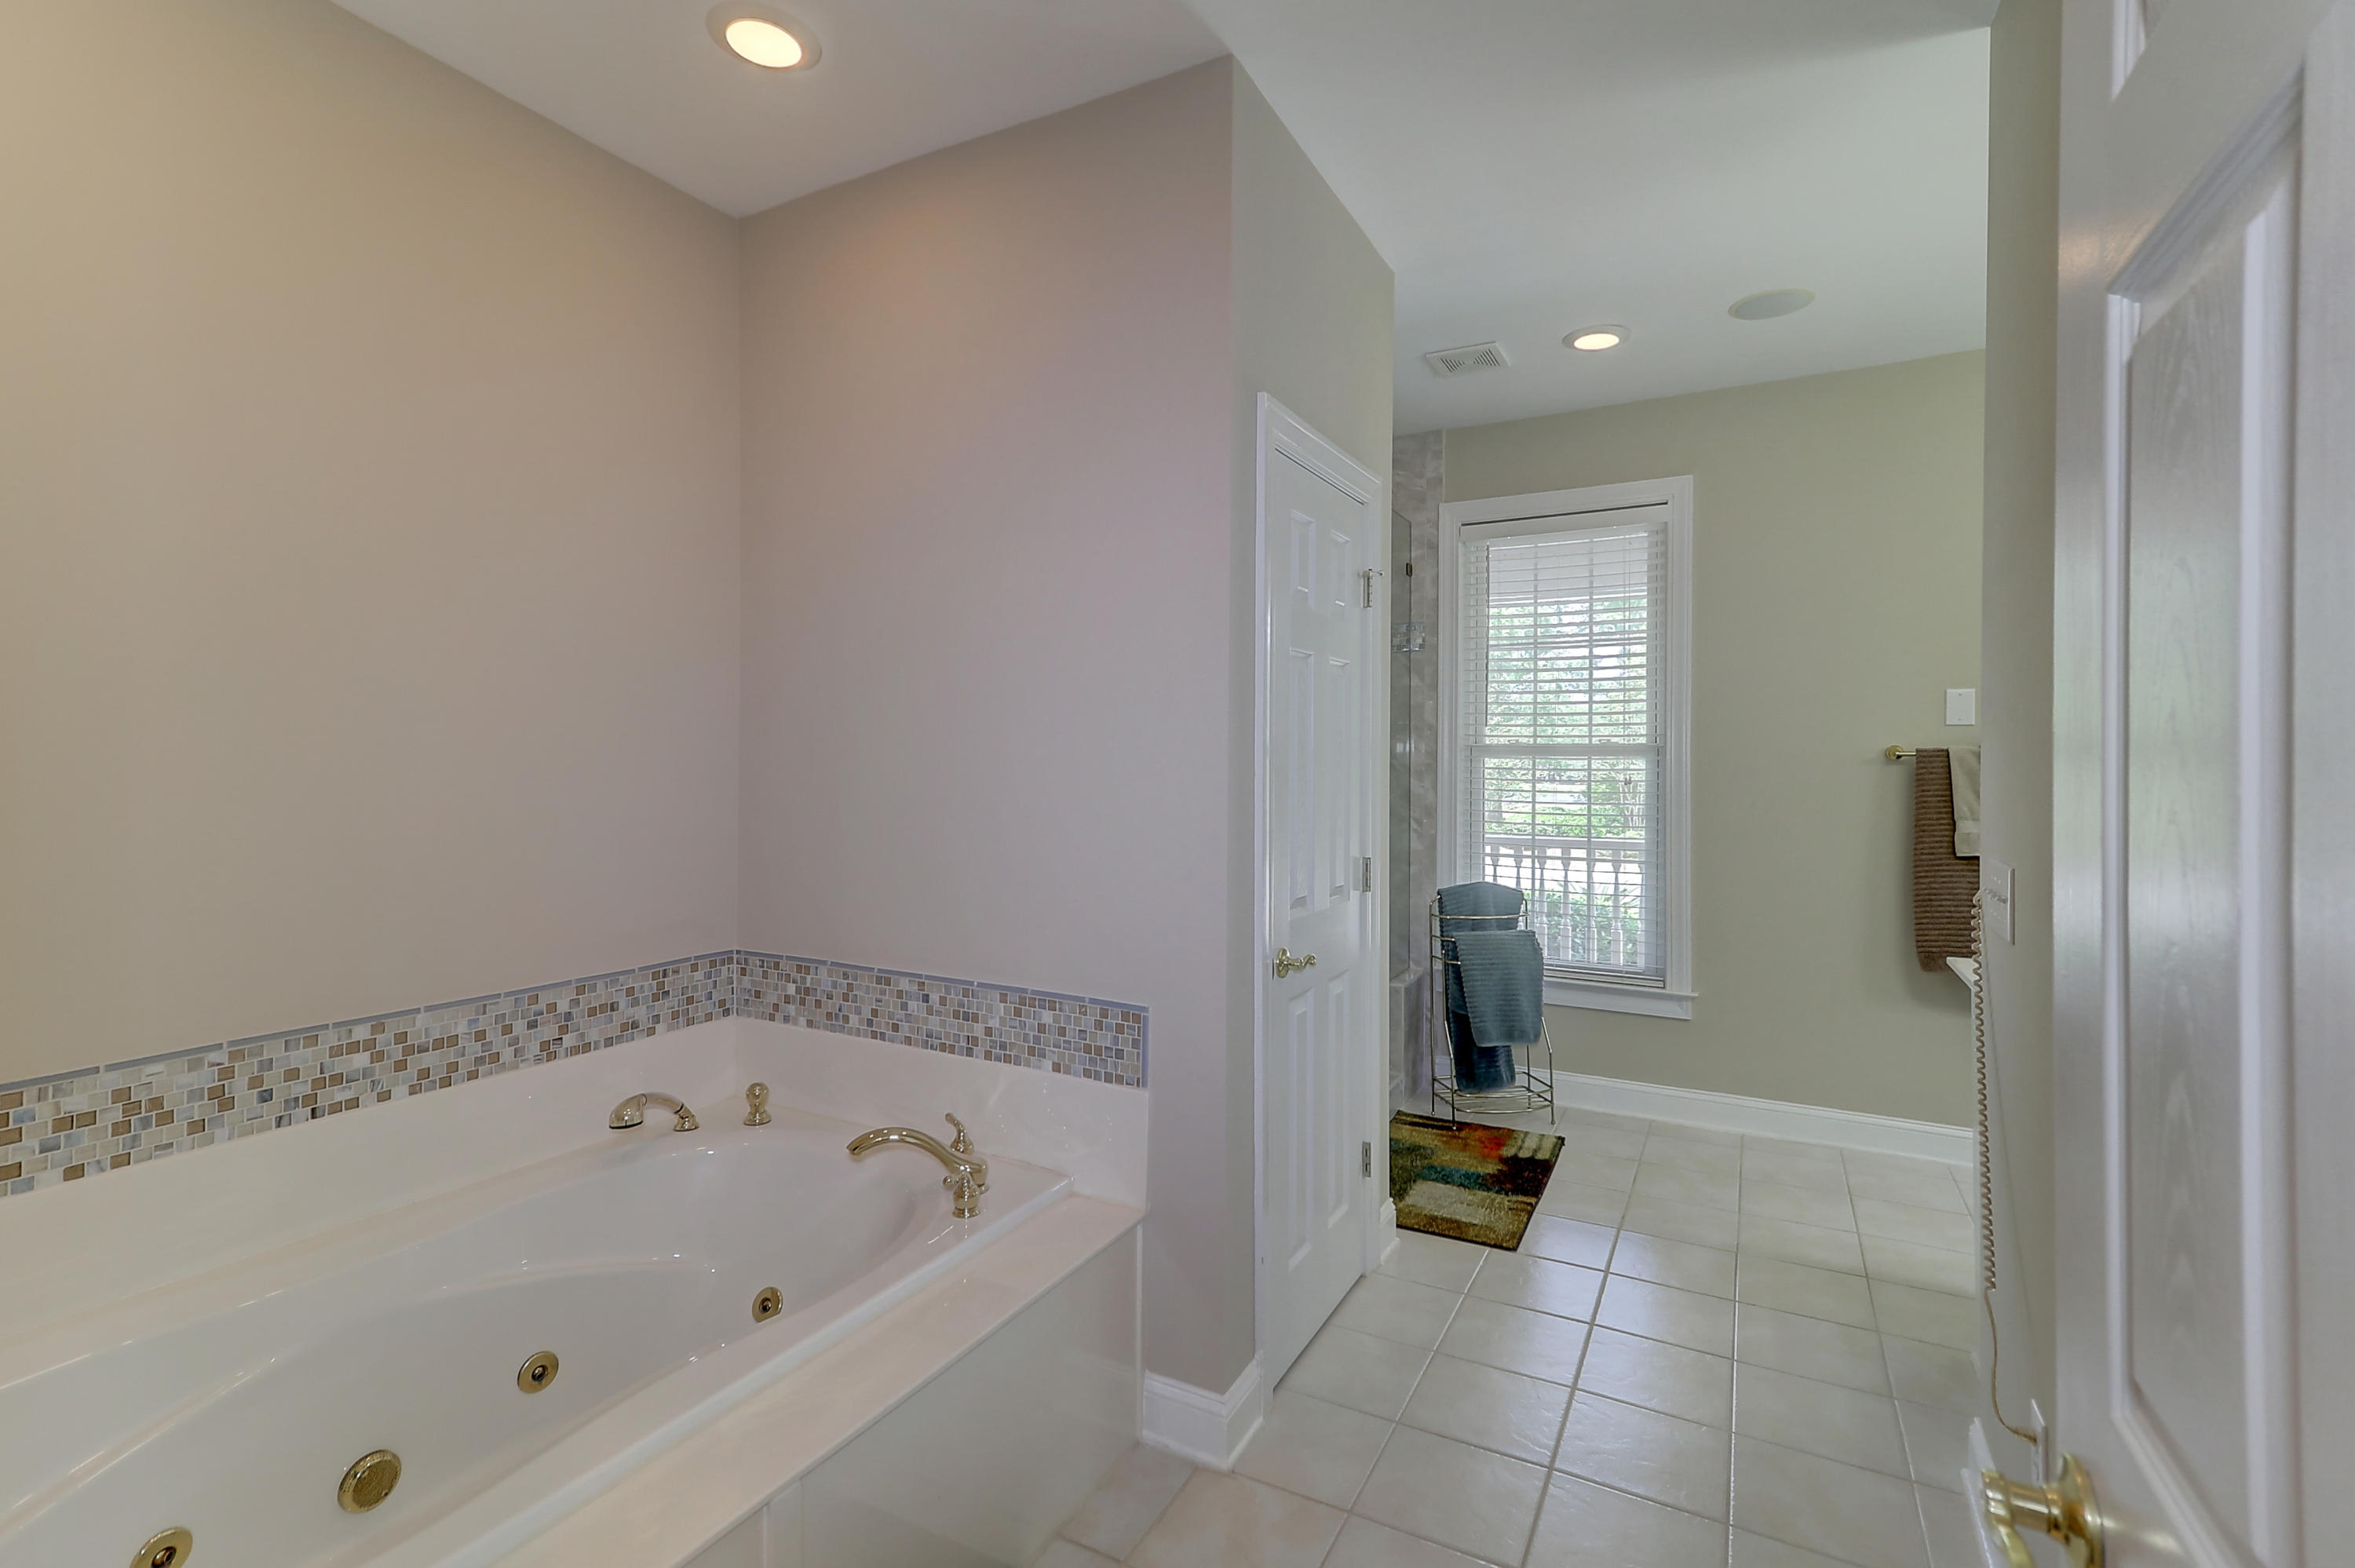 Coosaw Creek Country Club Homes For Sale - 8700 Fairway Woods, North Charleston, SC - 33